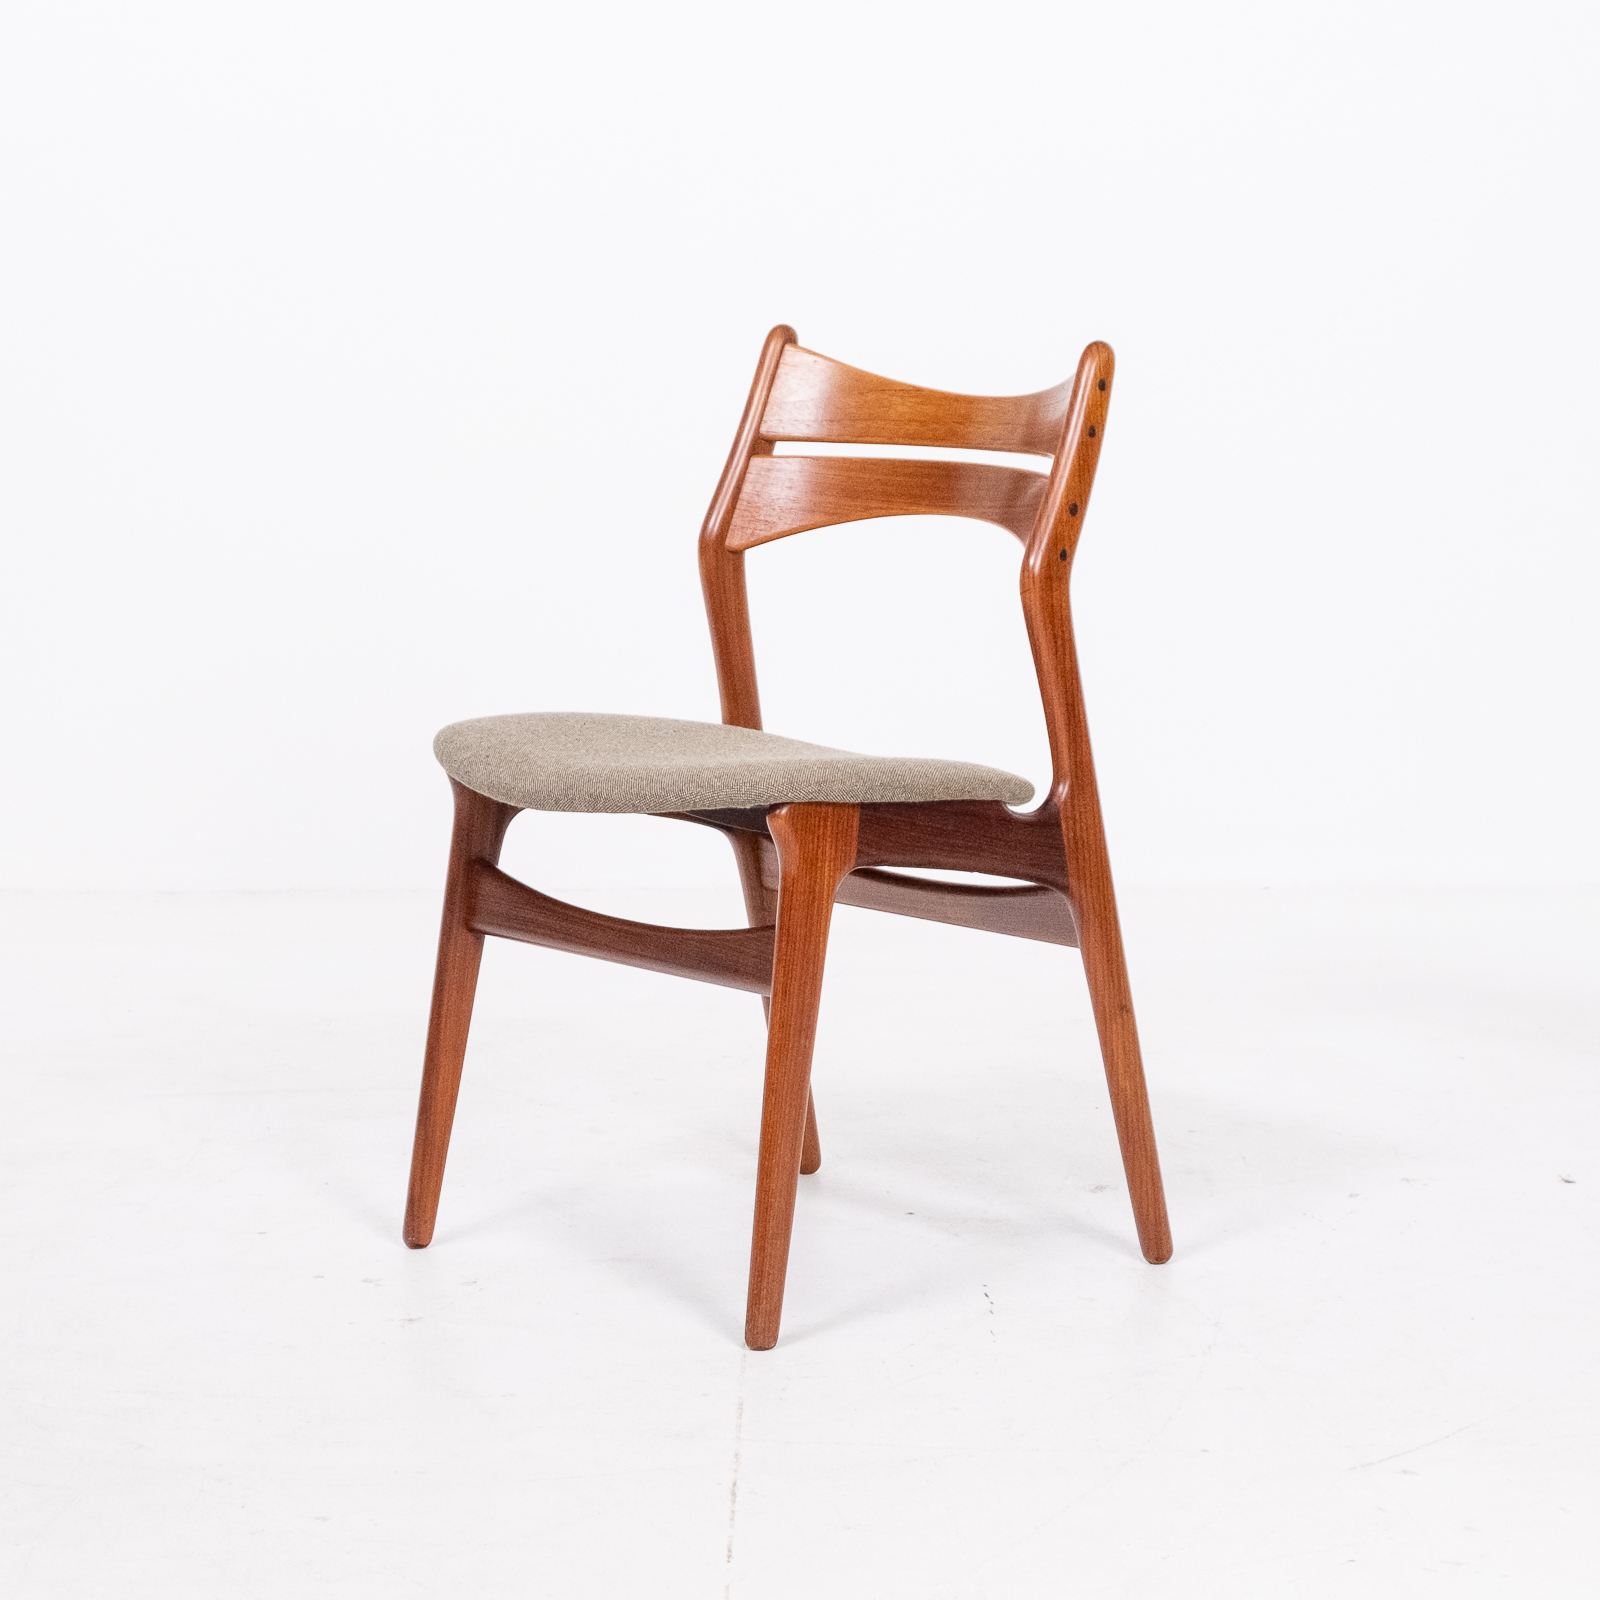 Set Of 2 Model 130 Dining Chairs By Erik Buch For Christian Christensens Mobelfabrik In New Instyle Upholstery And Teak, 1960s, Denmark 08